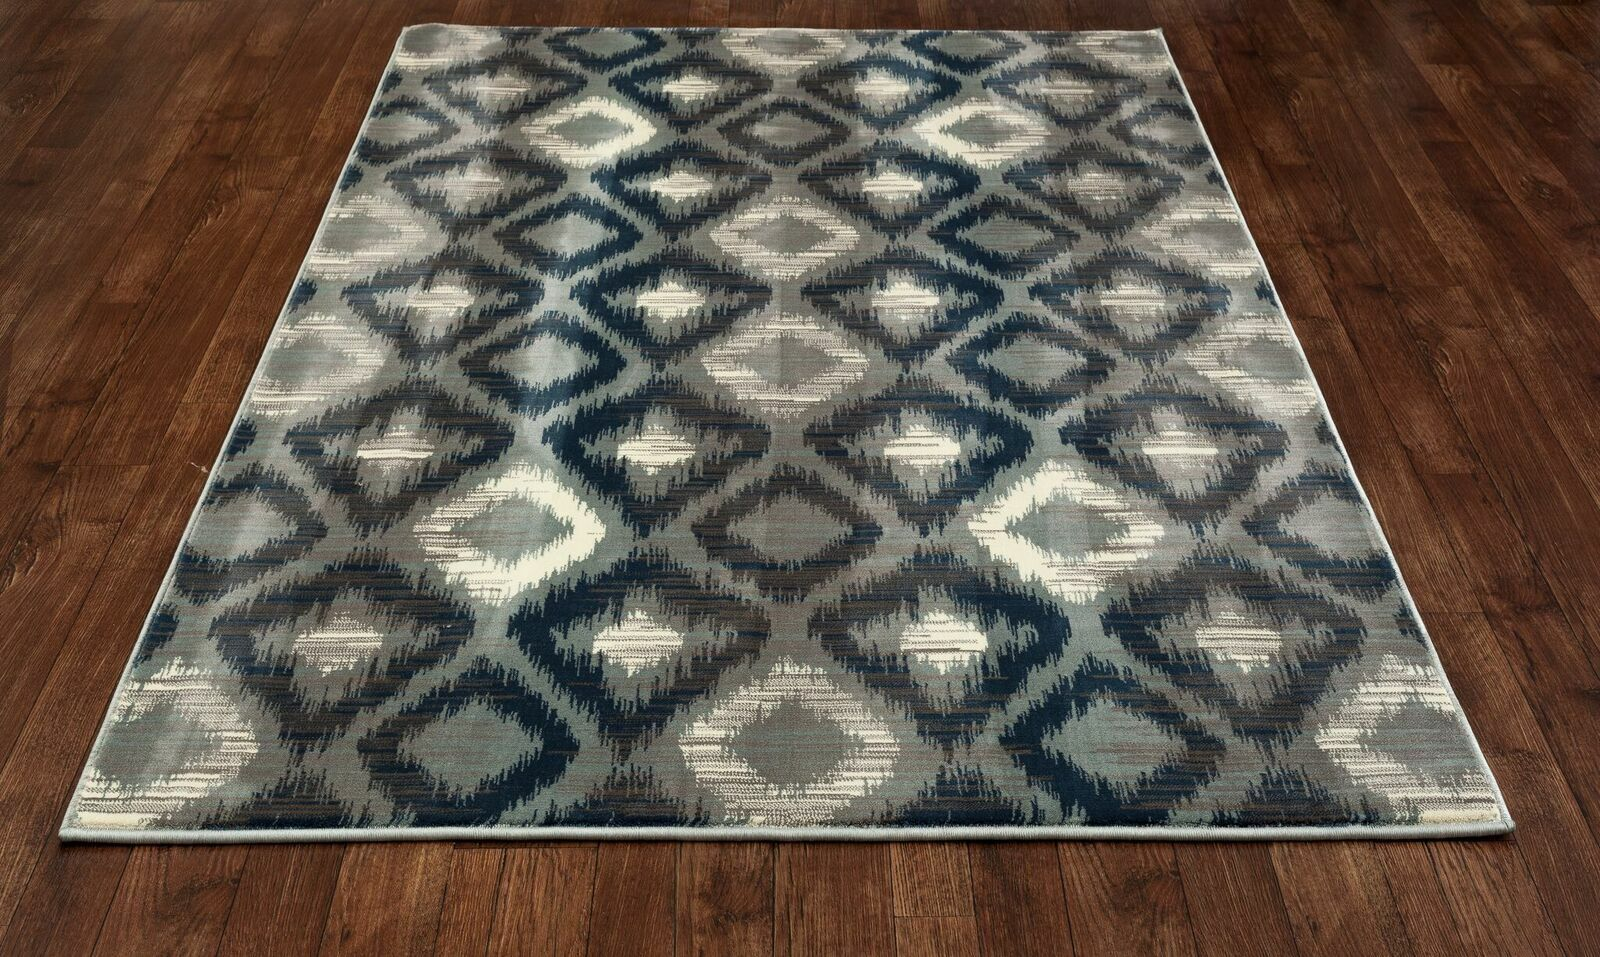 Hershberger Gray Area Rug Rug Size: 3'11 x 5'11